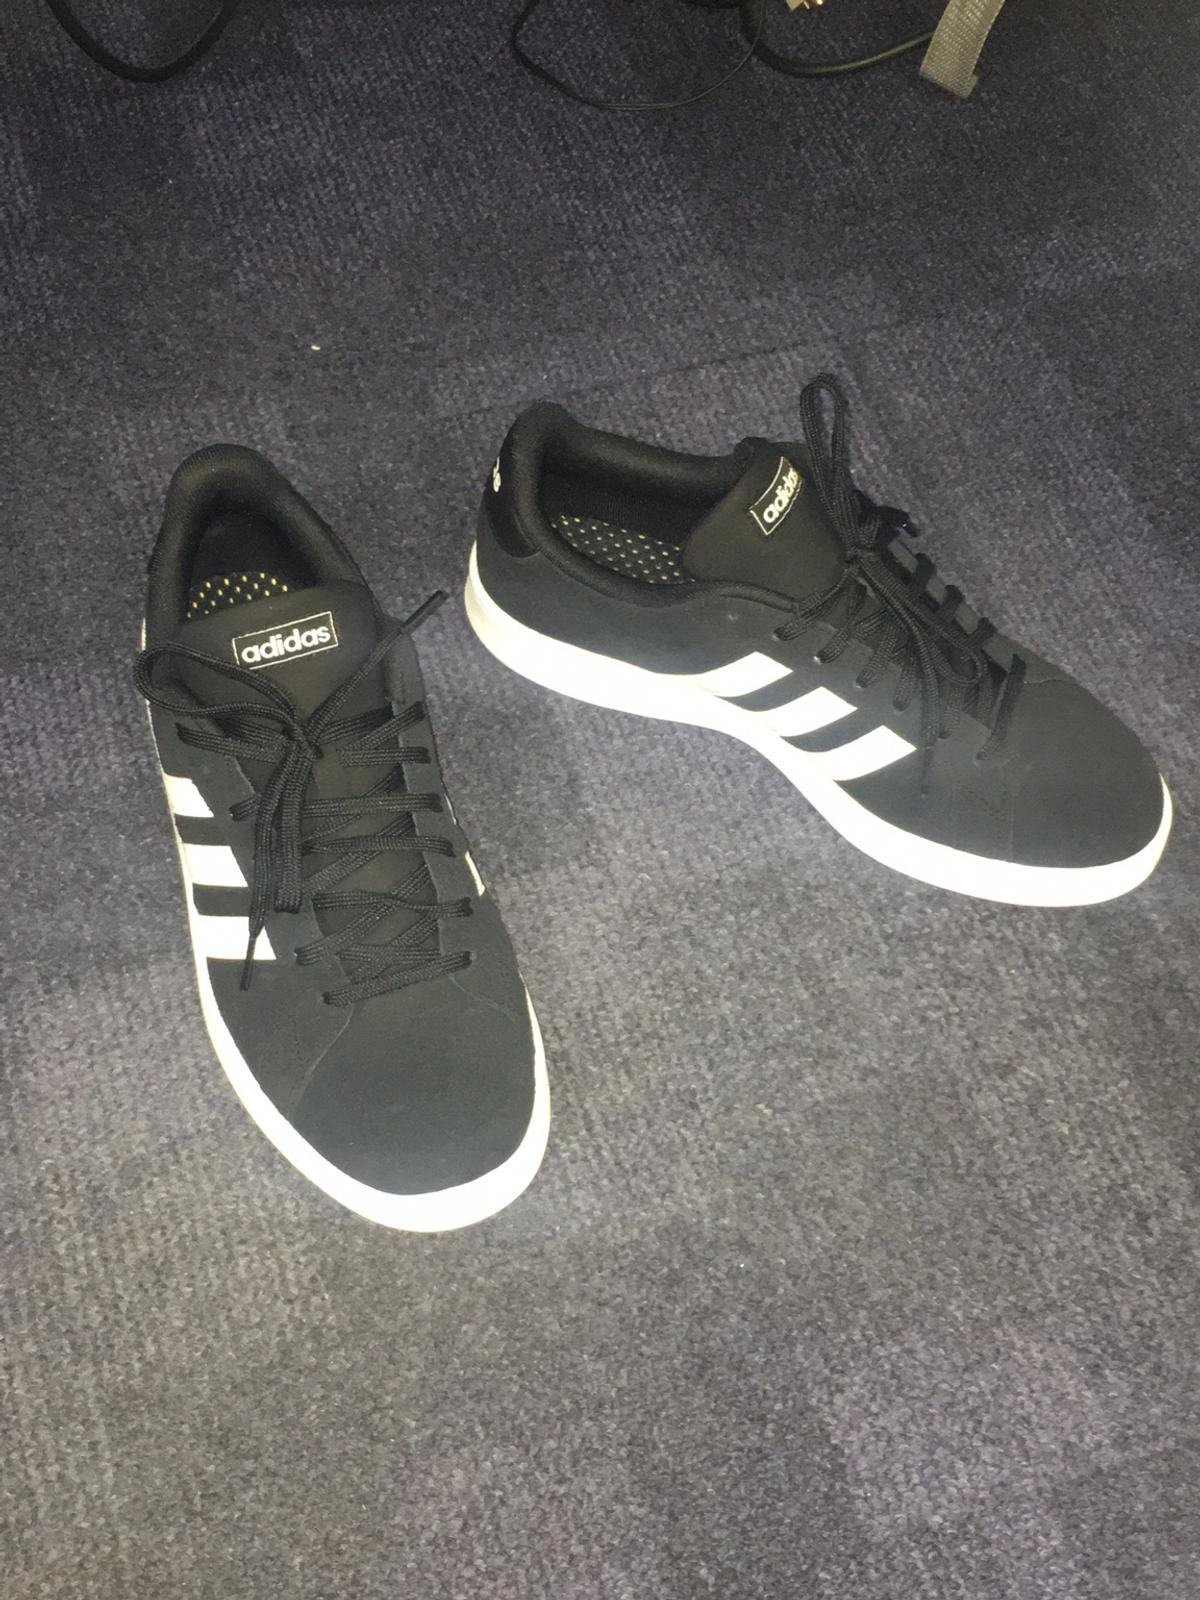 emparedado Autonomía Compatible con  mens adidas trainers size 9 uk in SW6 London Borough of Hammersmith and  Fulham for £50.00 for sale | Shpock